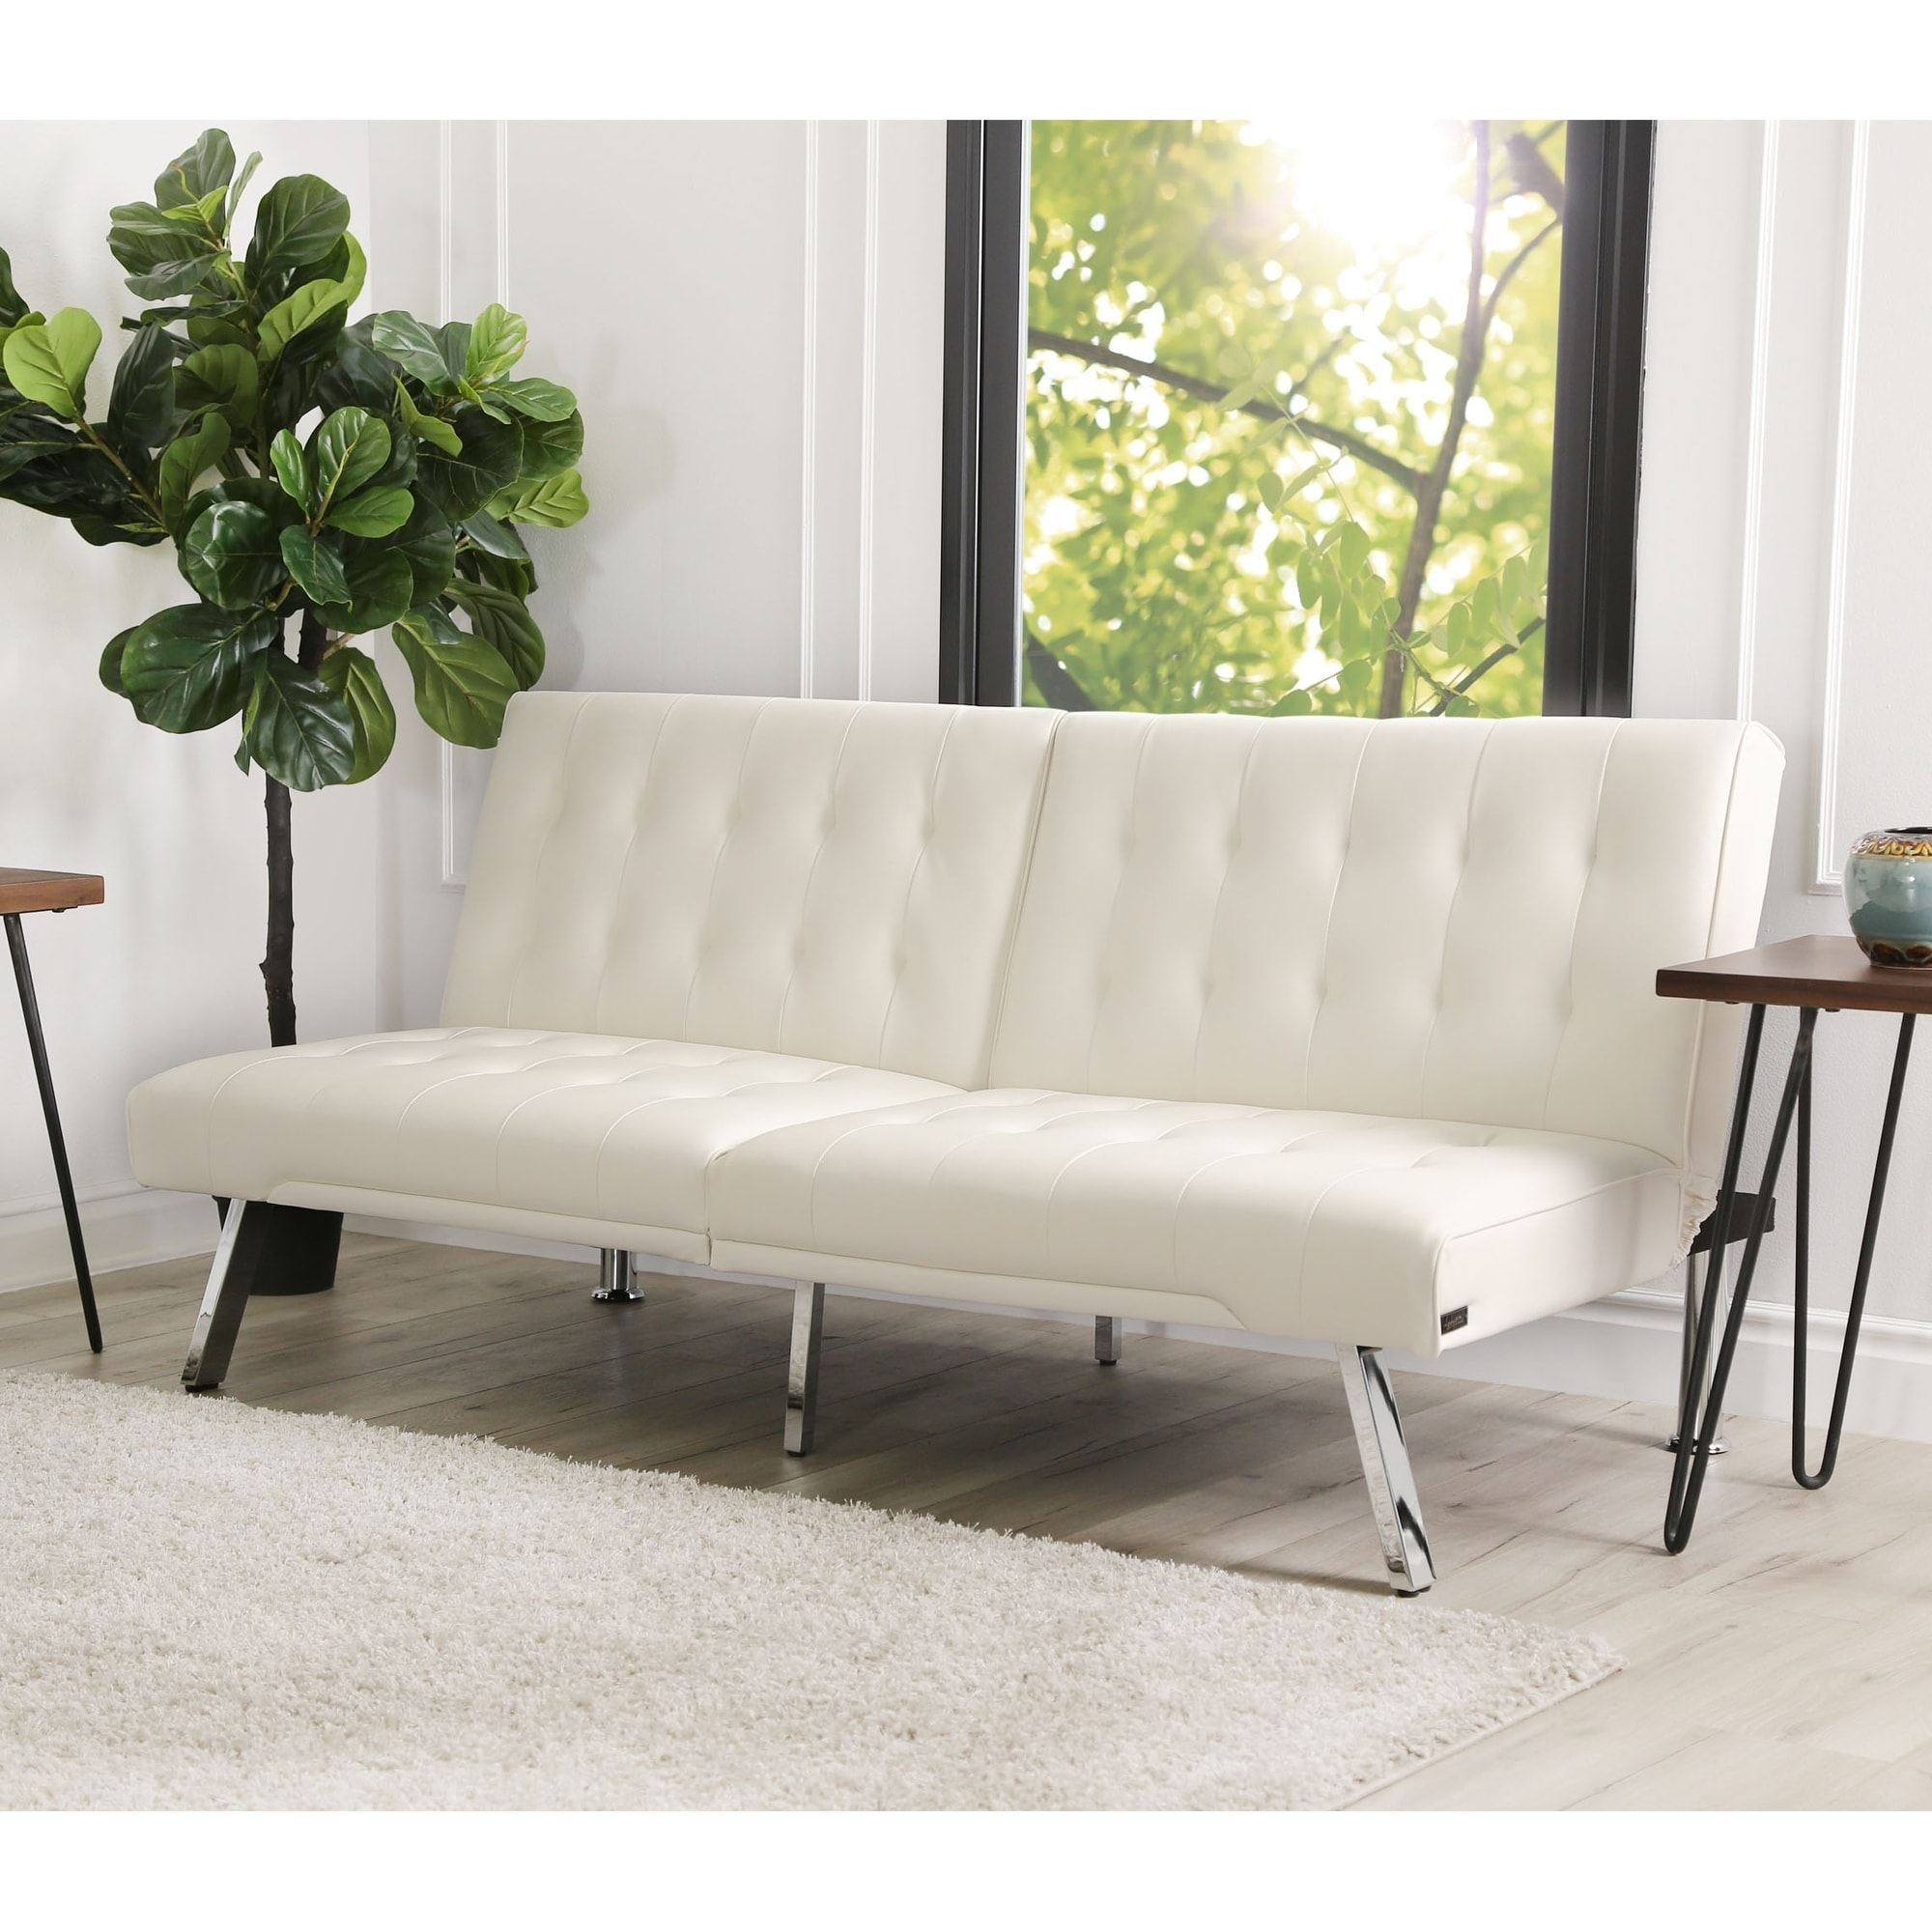 Ivory Leather Foldable Futon Sofa Bed